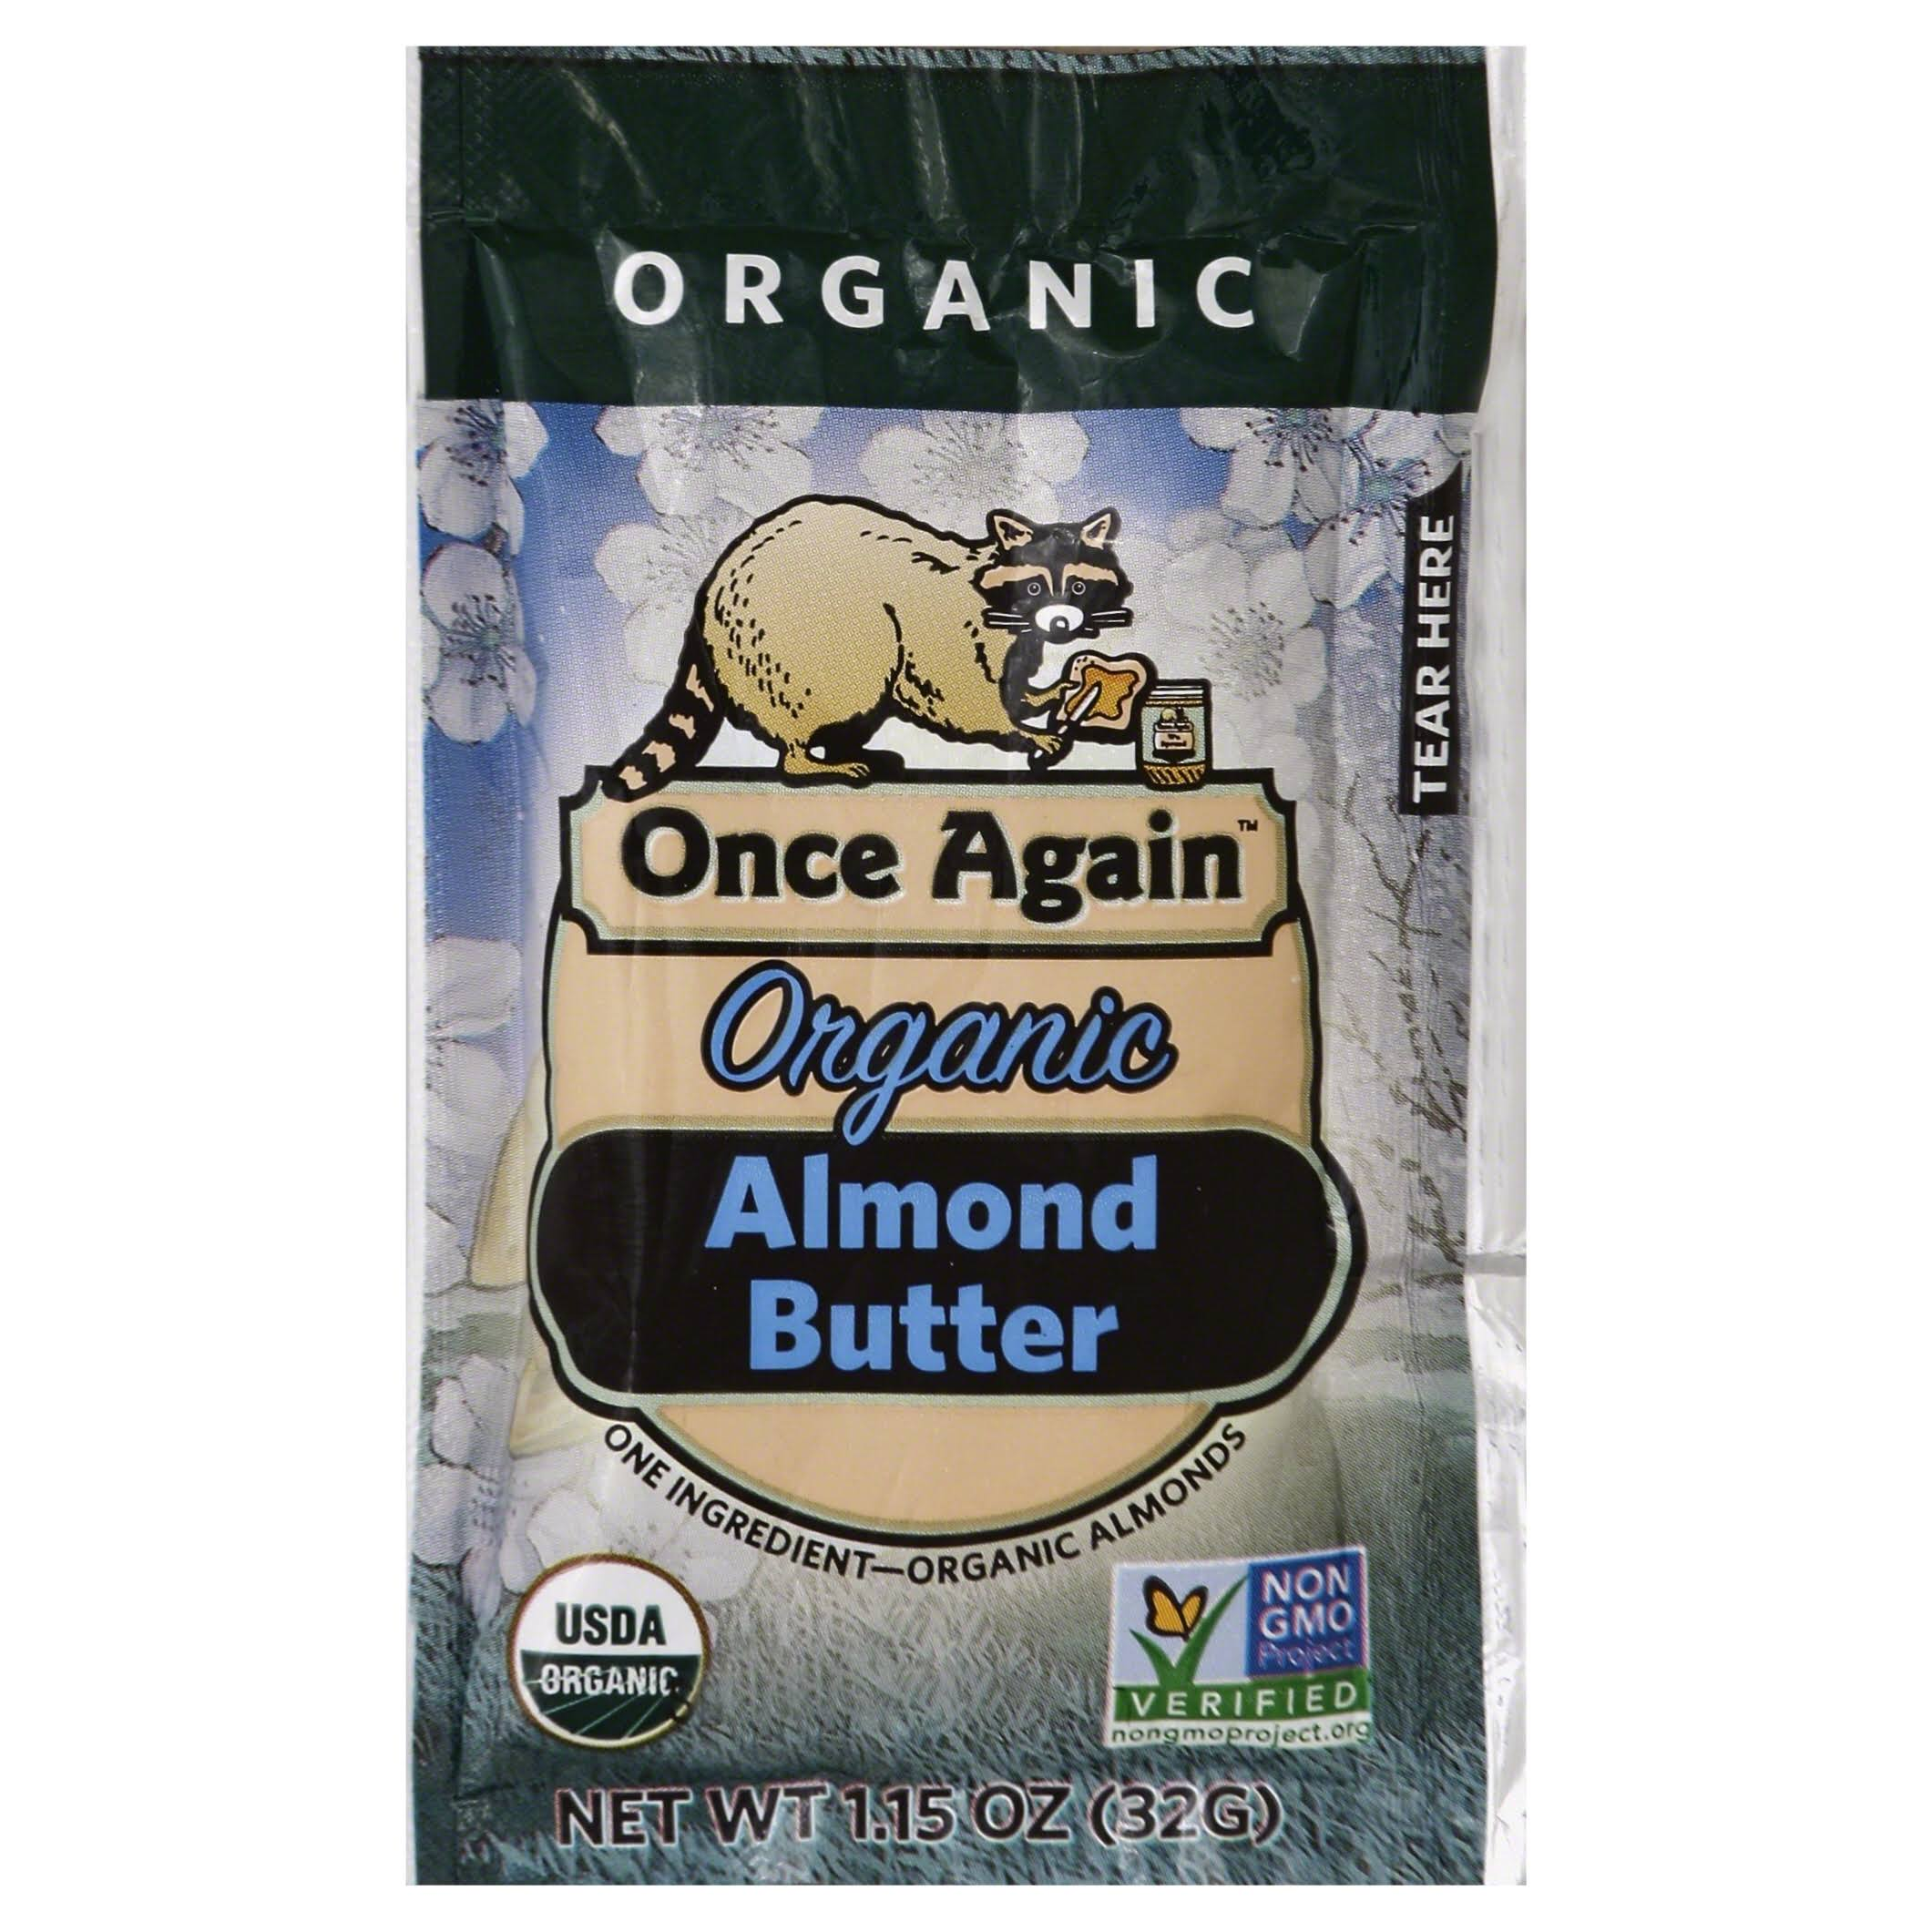 Once Again Organic Almond Butter - 1.15 oz bag